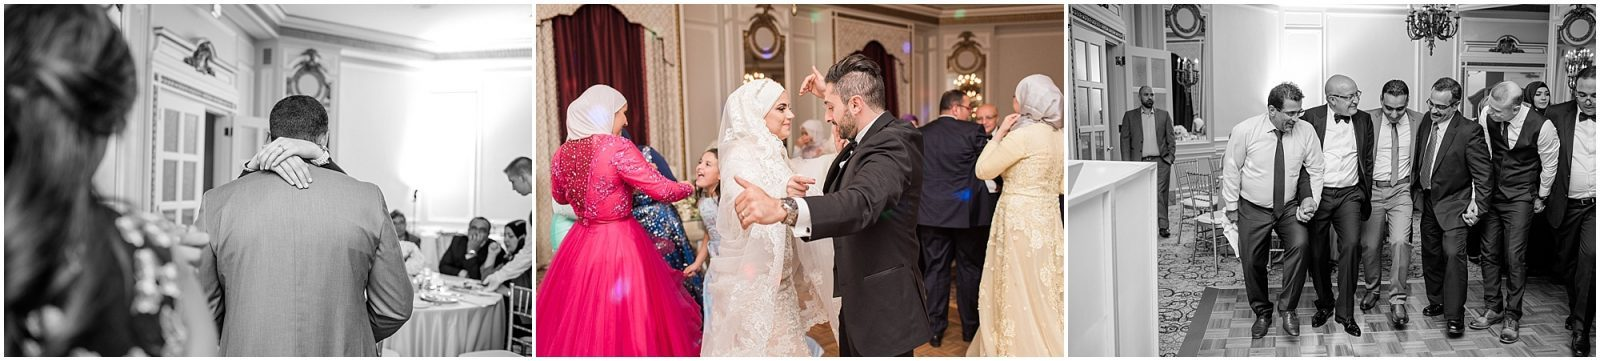 0100 Chateau Laurier Wedding - Hijabi Bride - Sireen & Anas- Ottawa_PhotosbyEmmaH.jpg